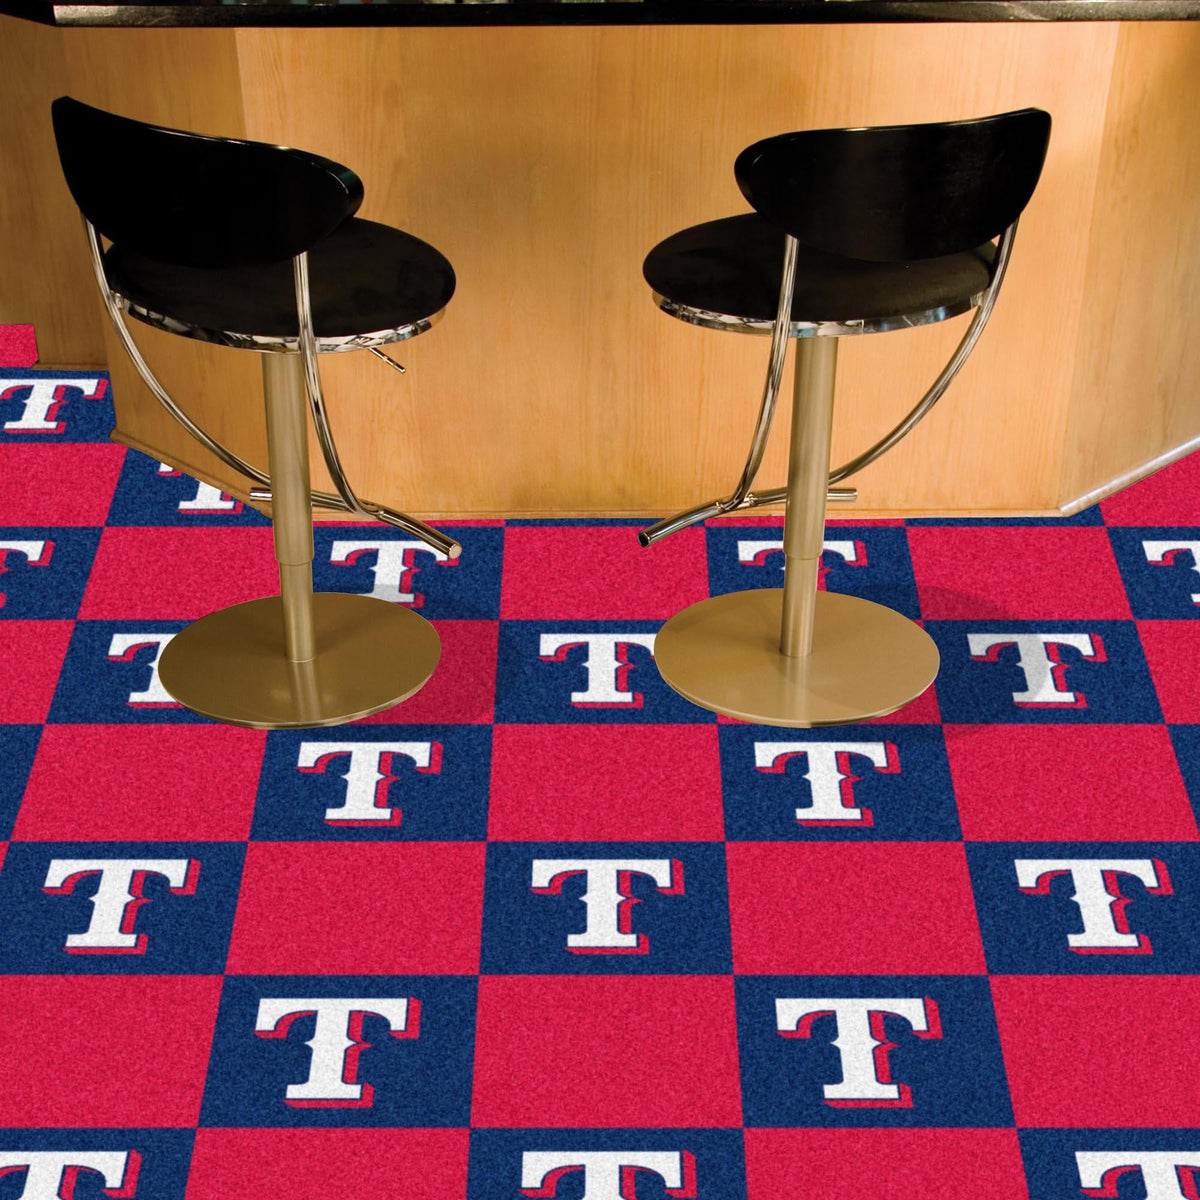 MLB - Team Carpet Tiles MLB Mats, Carpet Tile Flooring, Team Carpet Tiles, MLB, Home Fan Mats Texas Rangers